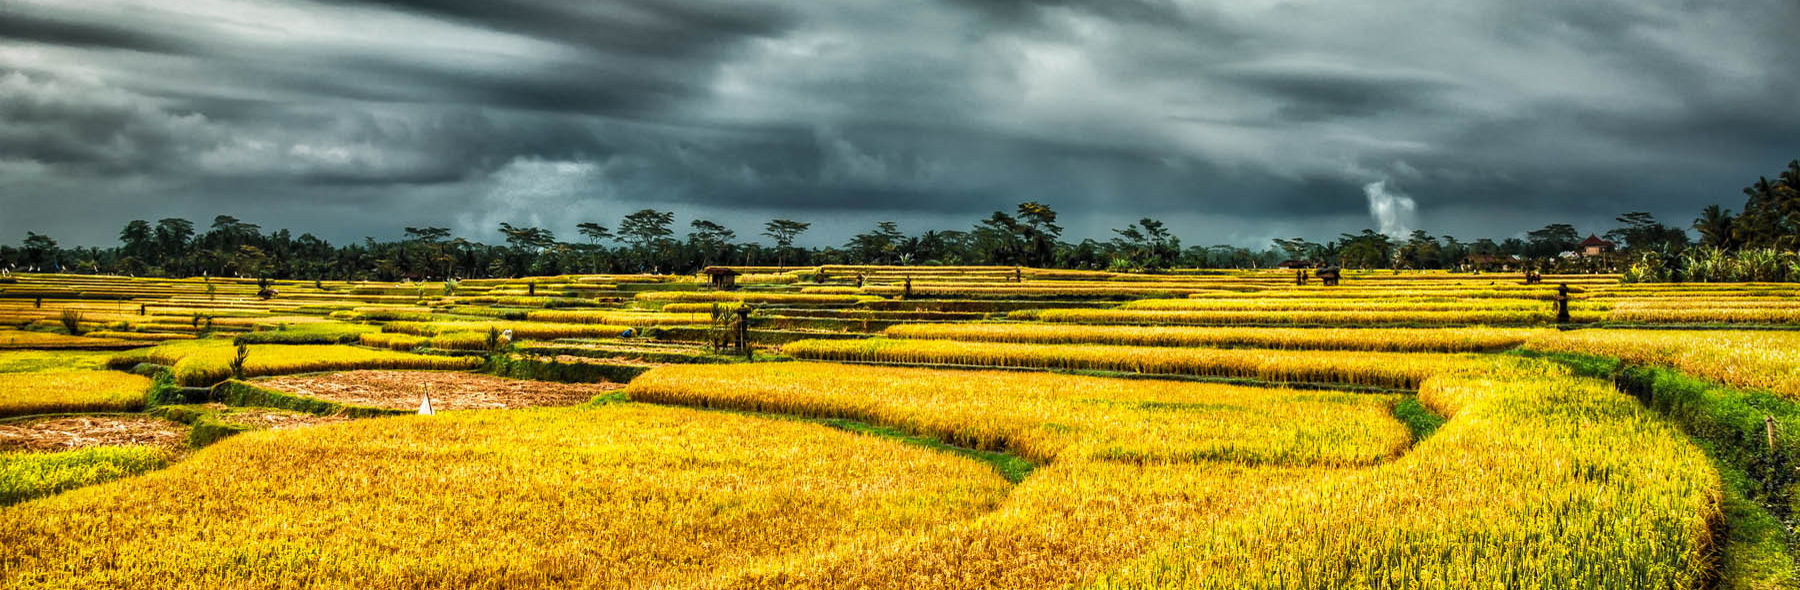 Harvested-Rice-Paddy